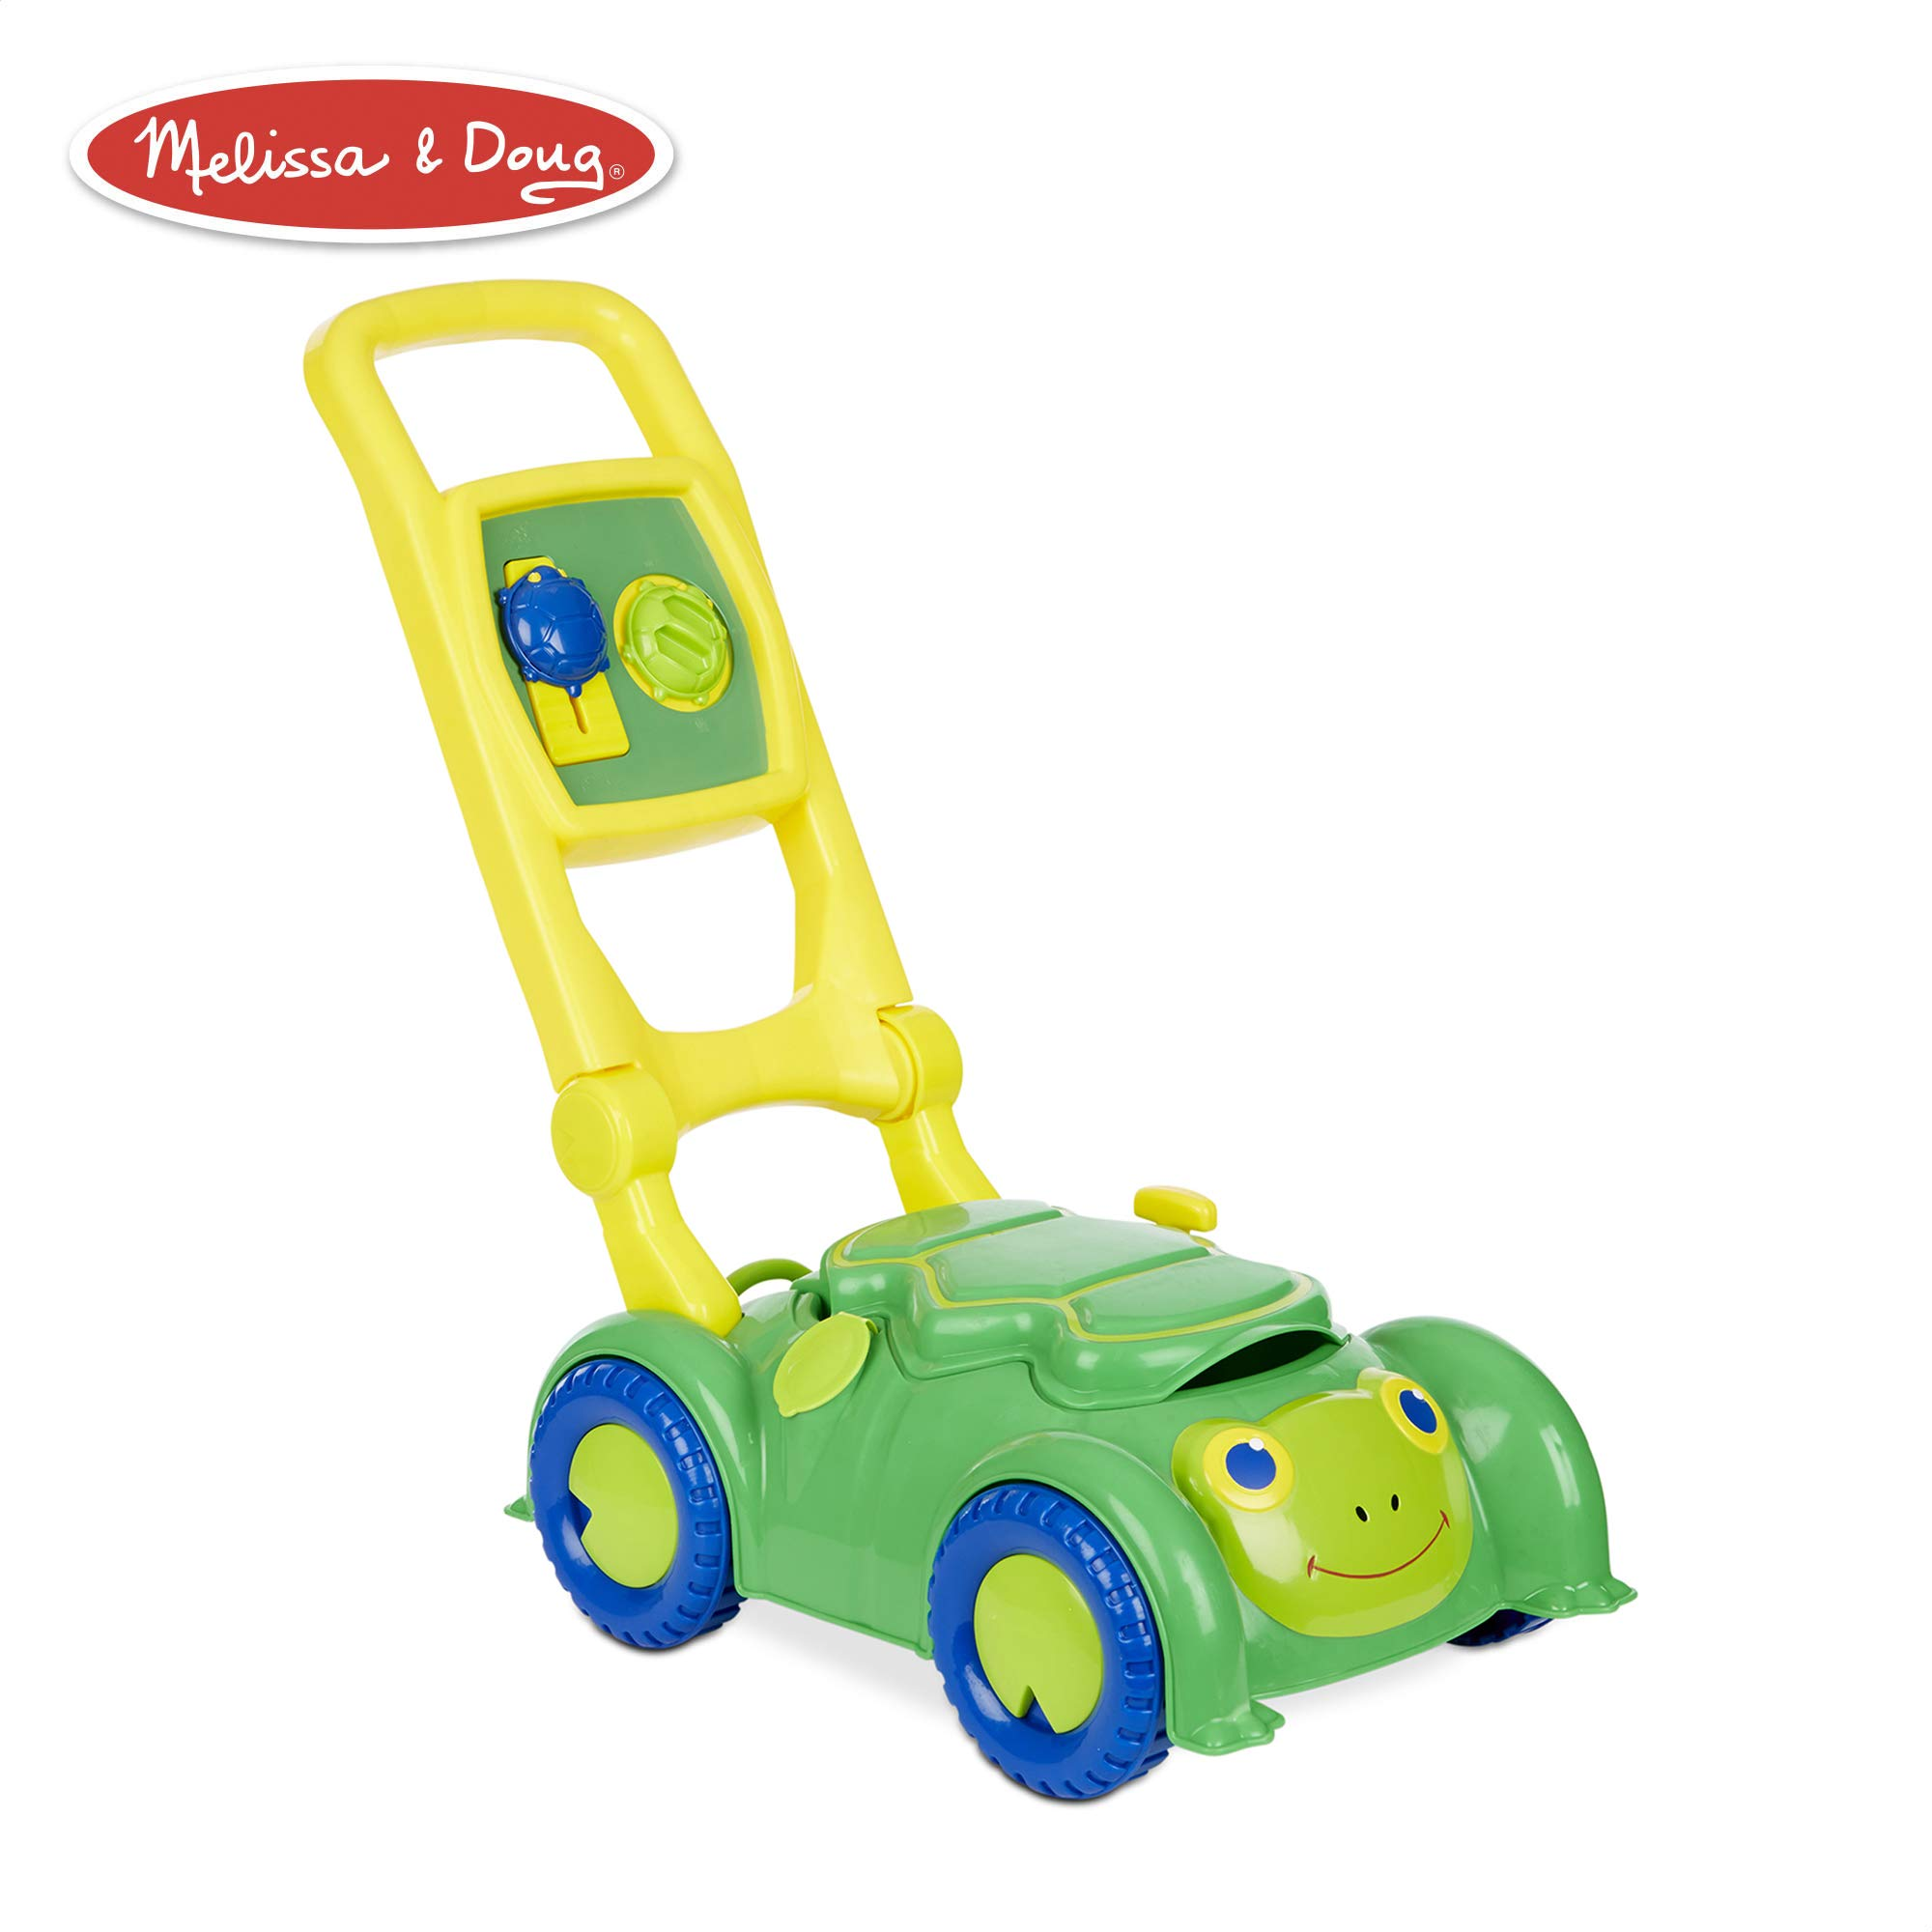 Melissa & Doug Sunny Patch Snappy Turtle Mower (Pretend Play Lawnmower Push Toy) by Melissa & Doug